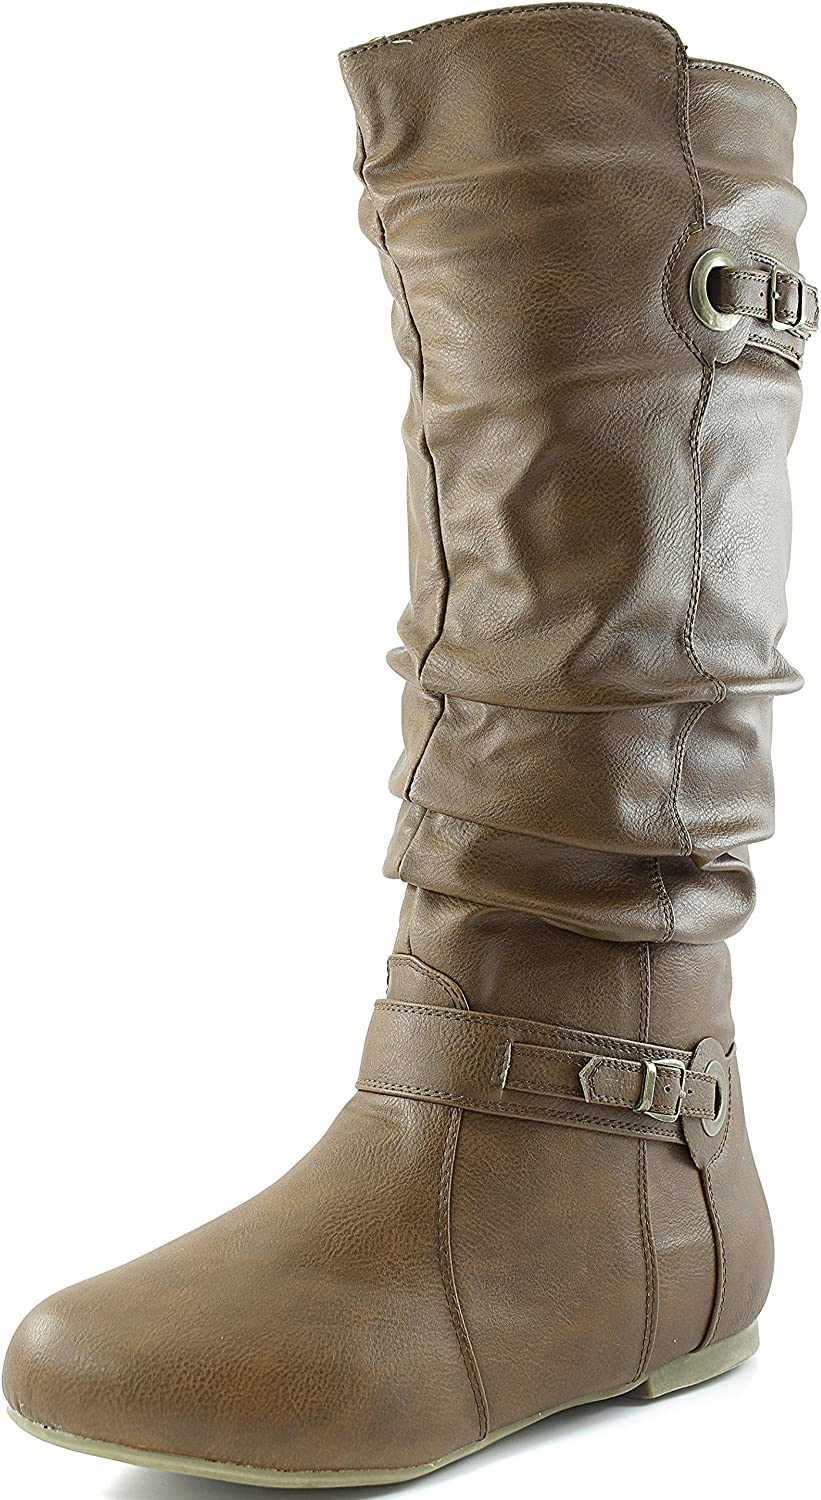 Women's Round Toe Mid Calf Knee High Buckle Slouched Boot